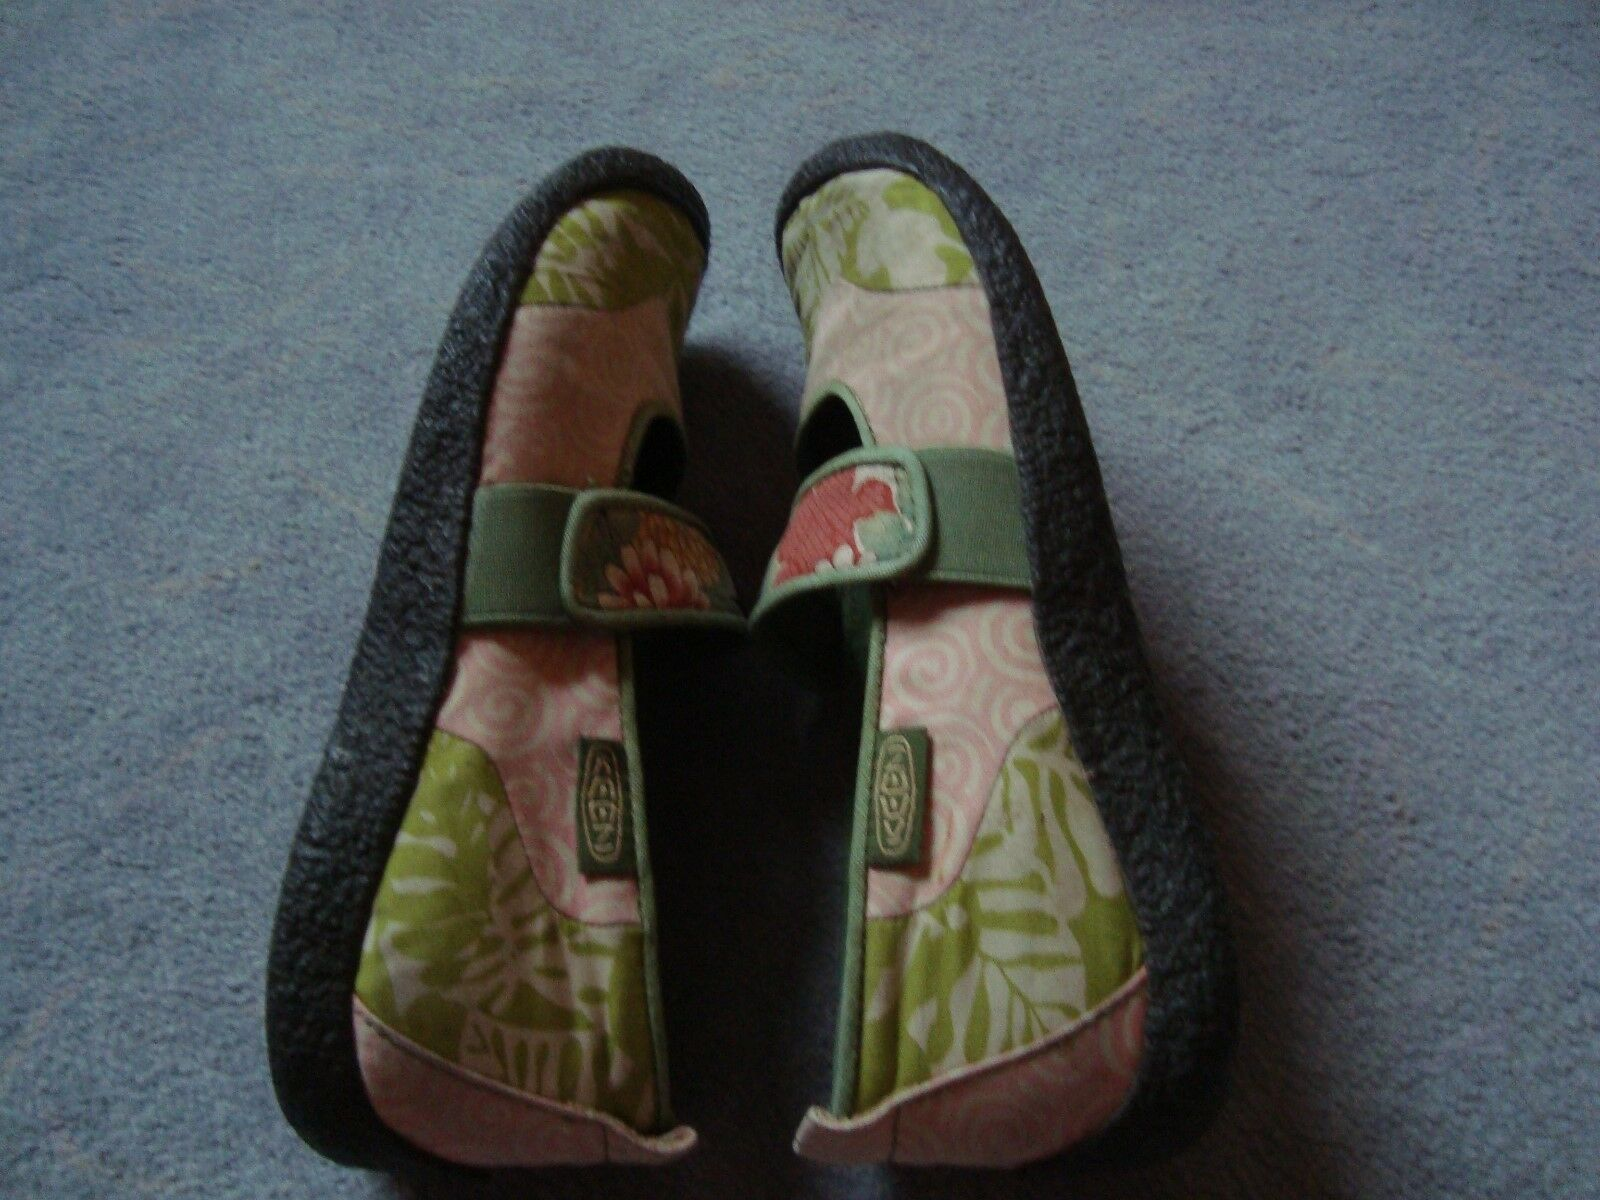 Keen Harvest MJ Slipper Damenschuhe Mädchenschuhe Ballerina Mary-Jane Slipper MJ Gr. 40 ea2bb1